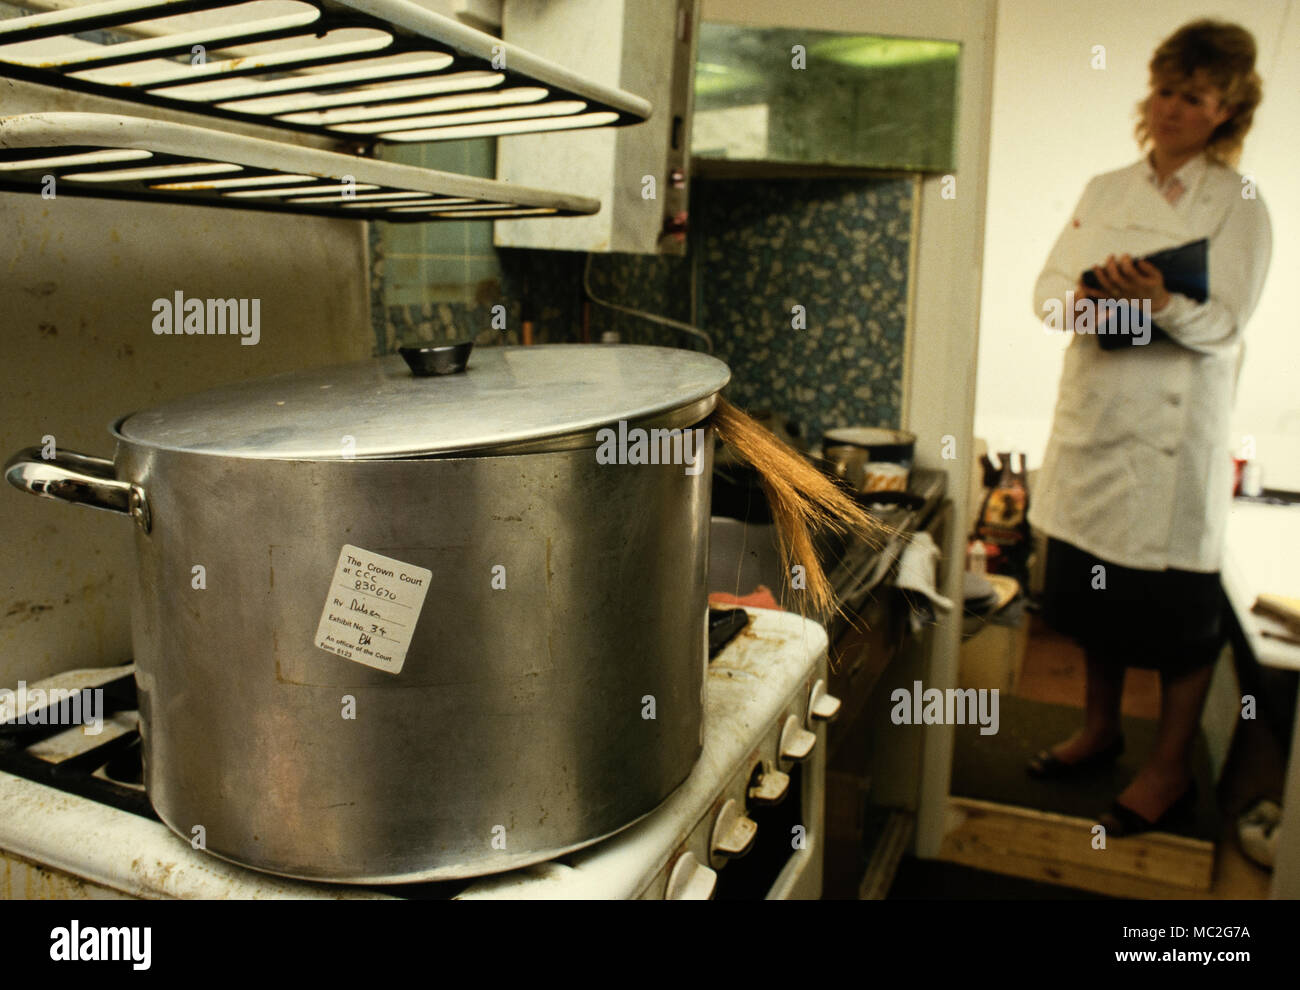 Police Exhibit High Resolution Stock Photography And Images Alamy